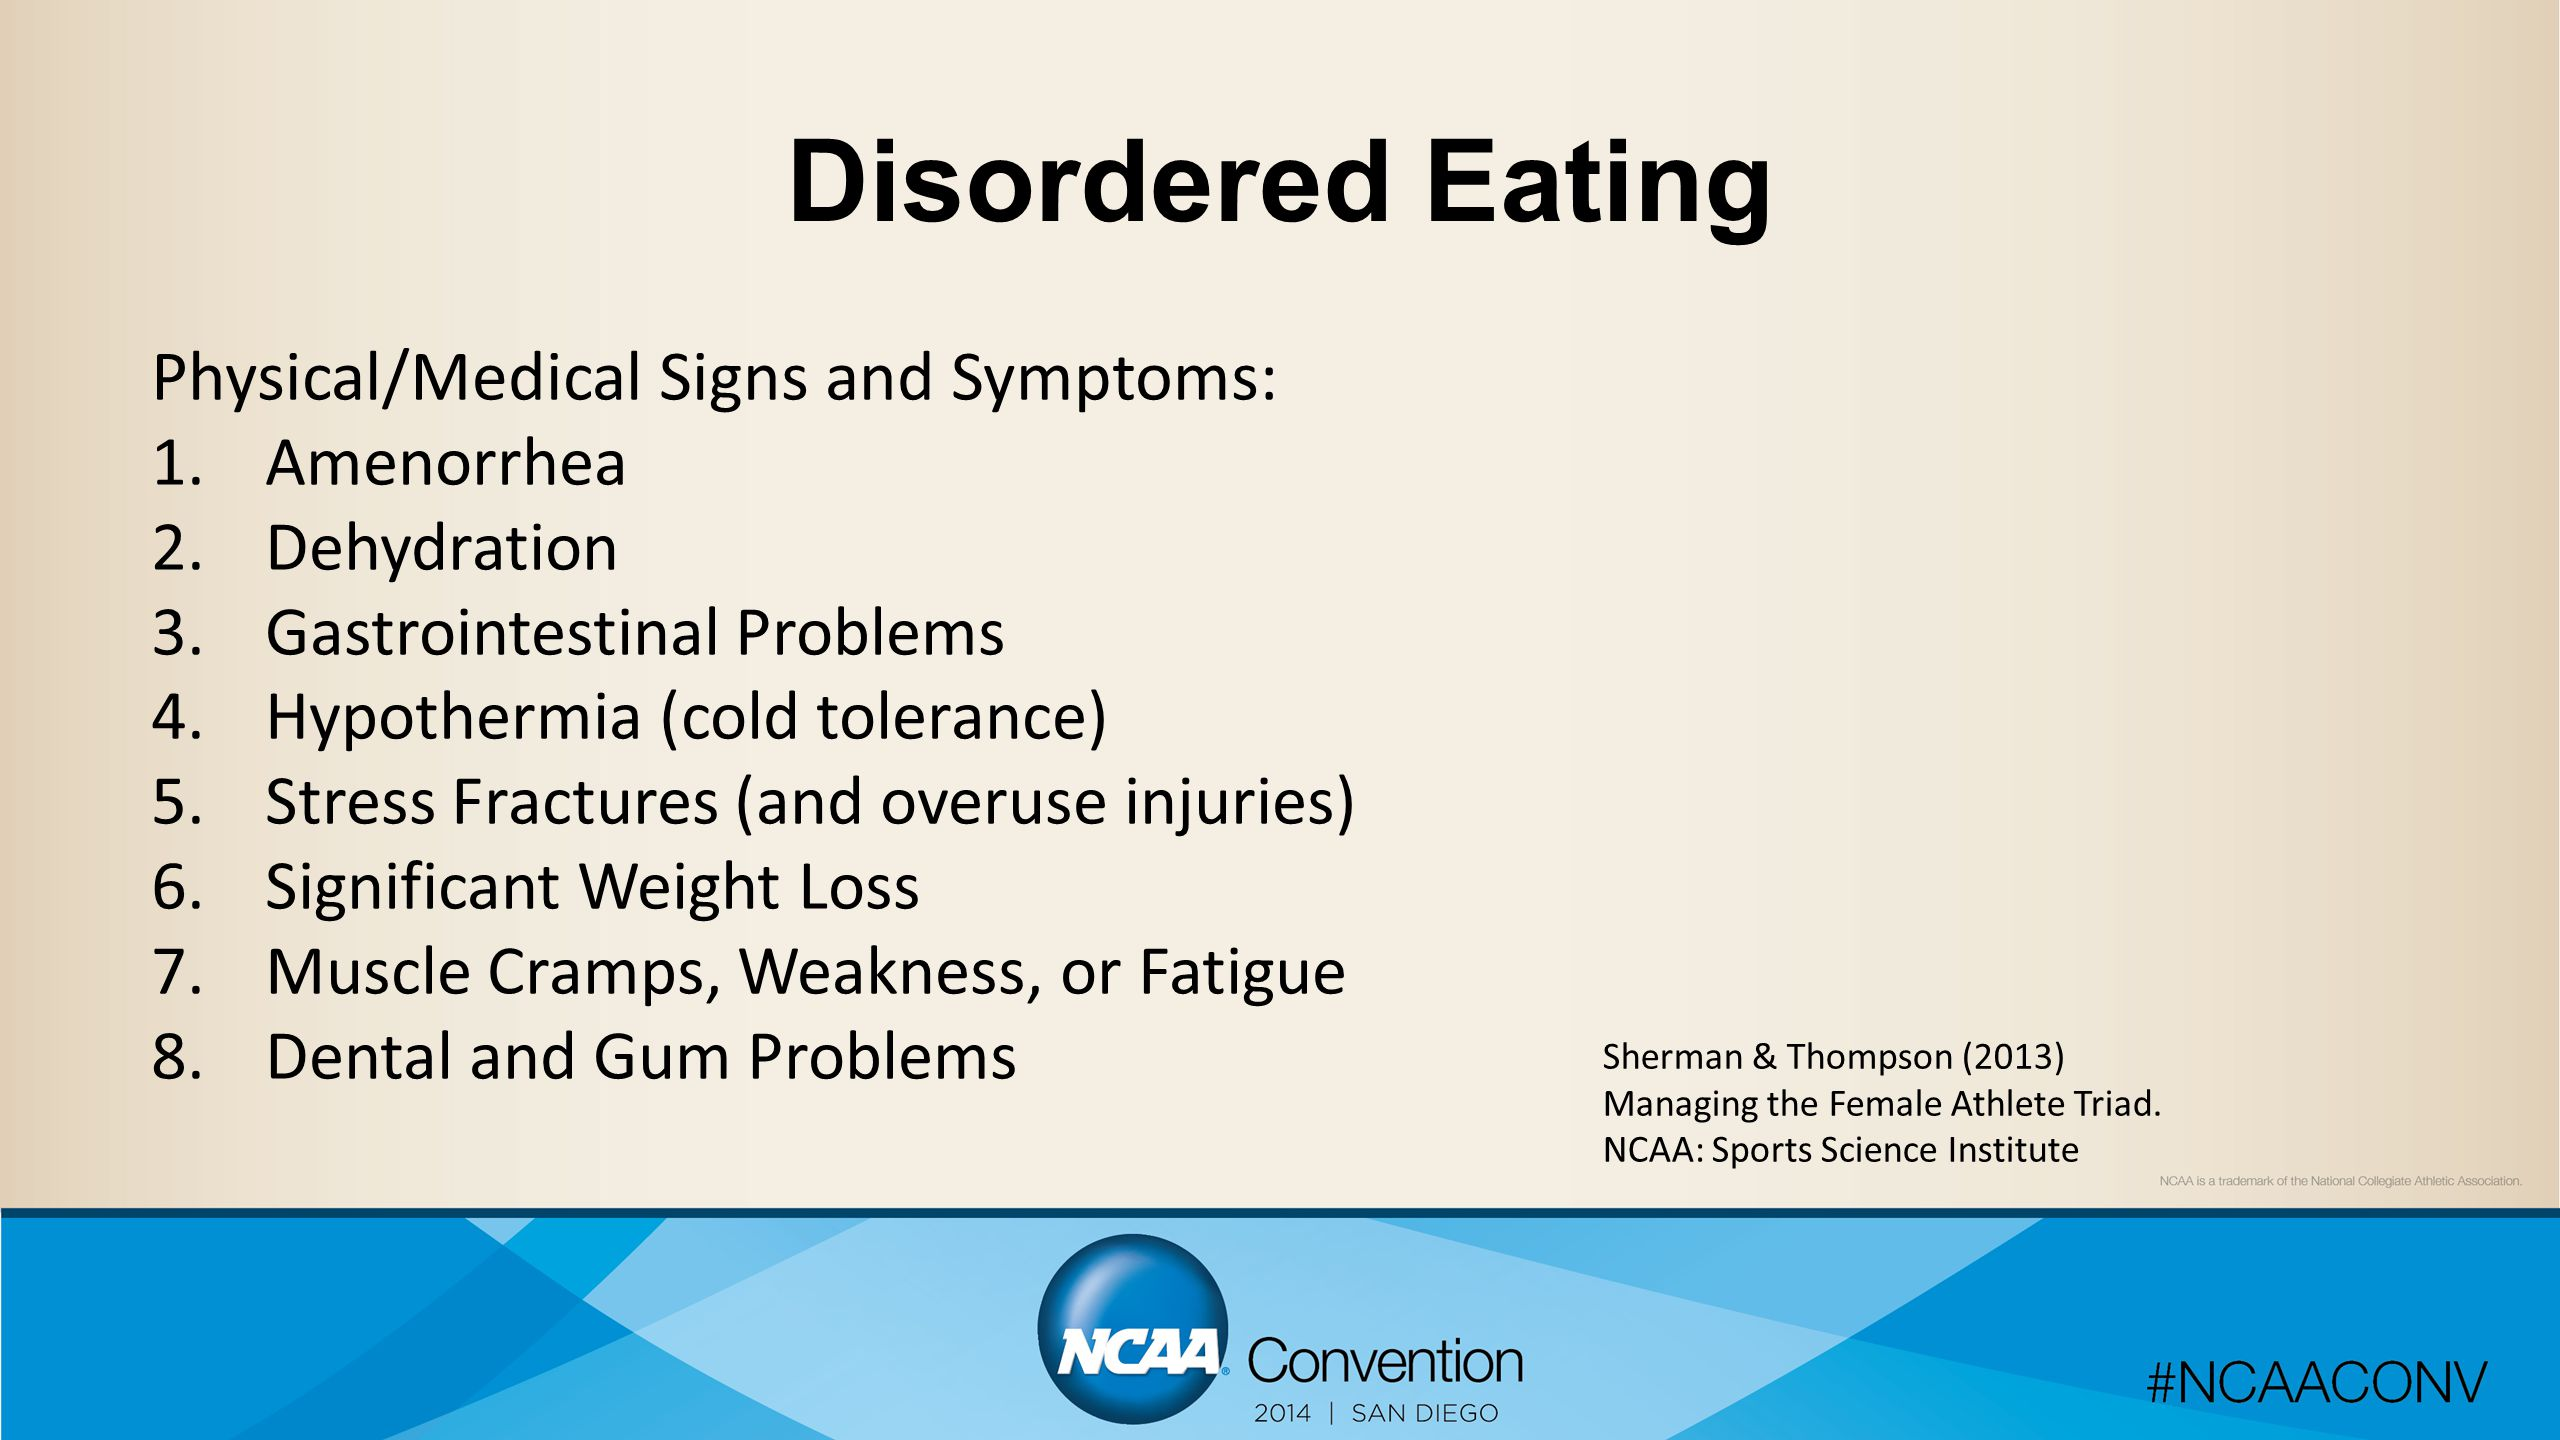 Disordered Eating Physical/Medical Signs and Symptoms: 1.Amenorrhea 2.Dehydration 3.Gastrointestinal Problems 4.Hypothermia (cold tolerance) 5.Stress Fractures (and overuse injuries) 6.Significant Weight Loss 7.Muscle Cramps, Weakness, or Fatigue 8.Dental and Gum Problems Sherman & Thompson (2013) Managing the Female Athlete Triad.